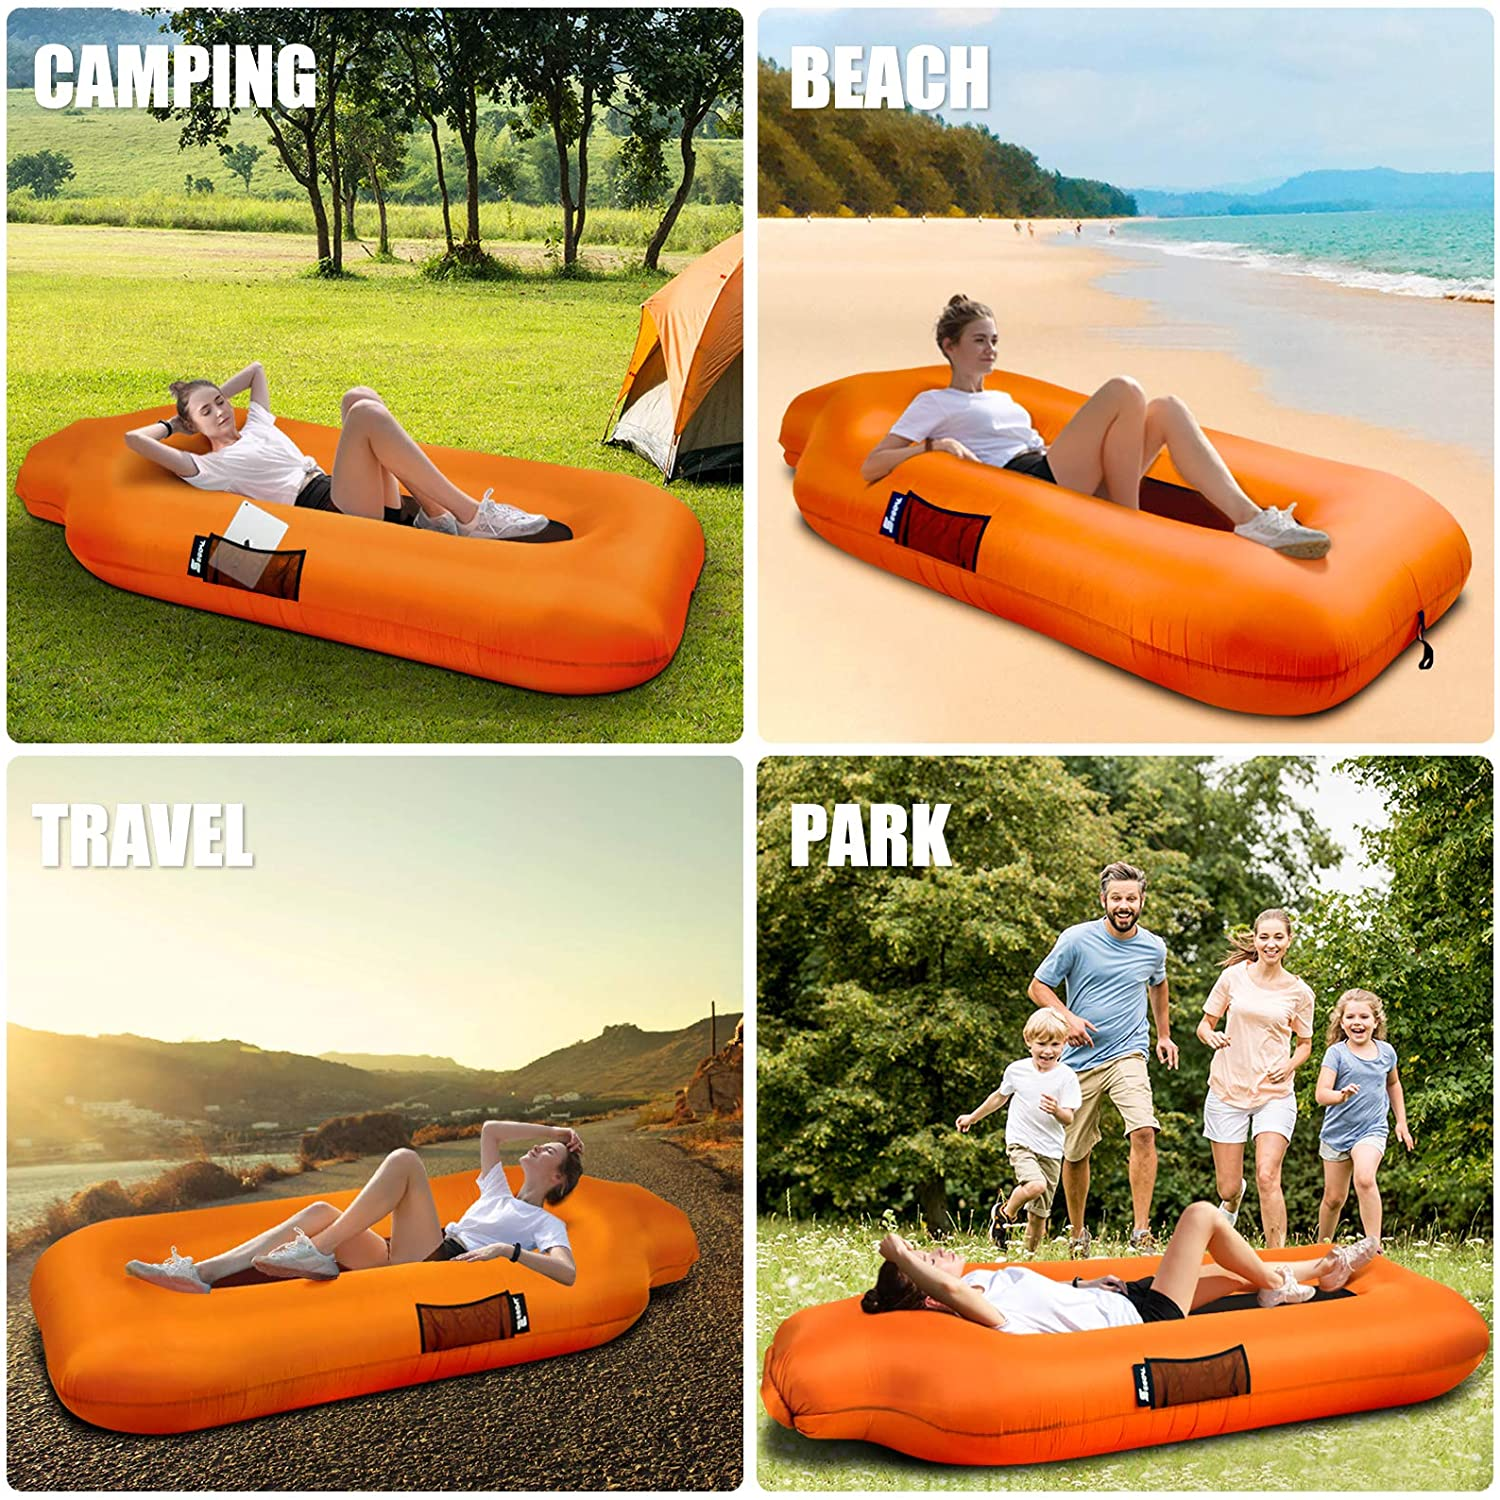 SEGOAL Inflatable Lounger Beach Bed Camping Chair Air Sofa Couch Hammock with Pillow Portable Waterproof Anti-Air Leaking for Camping Hiking Travel Beach Picnic Lakeside No Pump Required